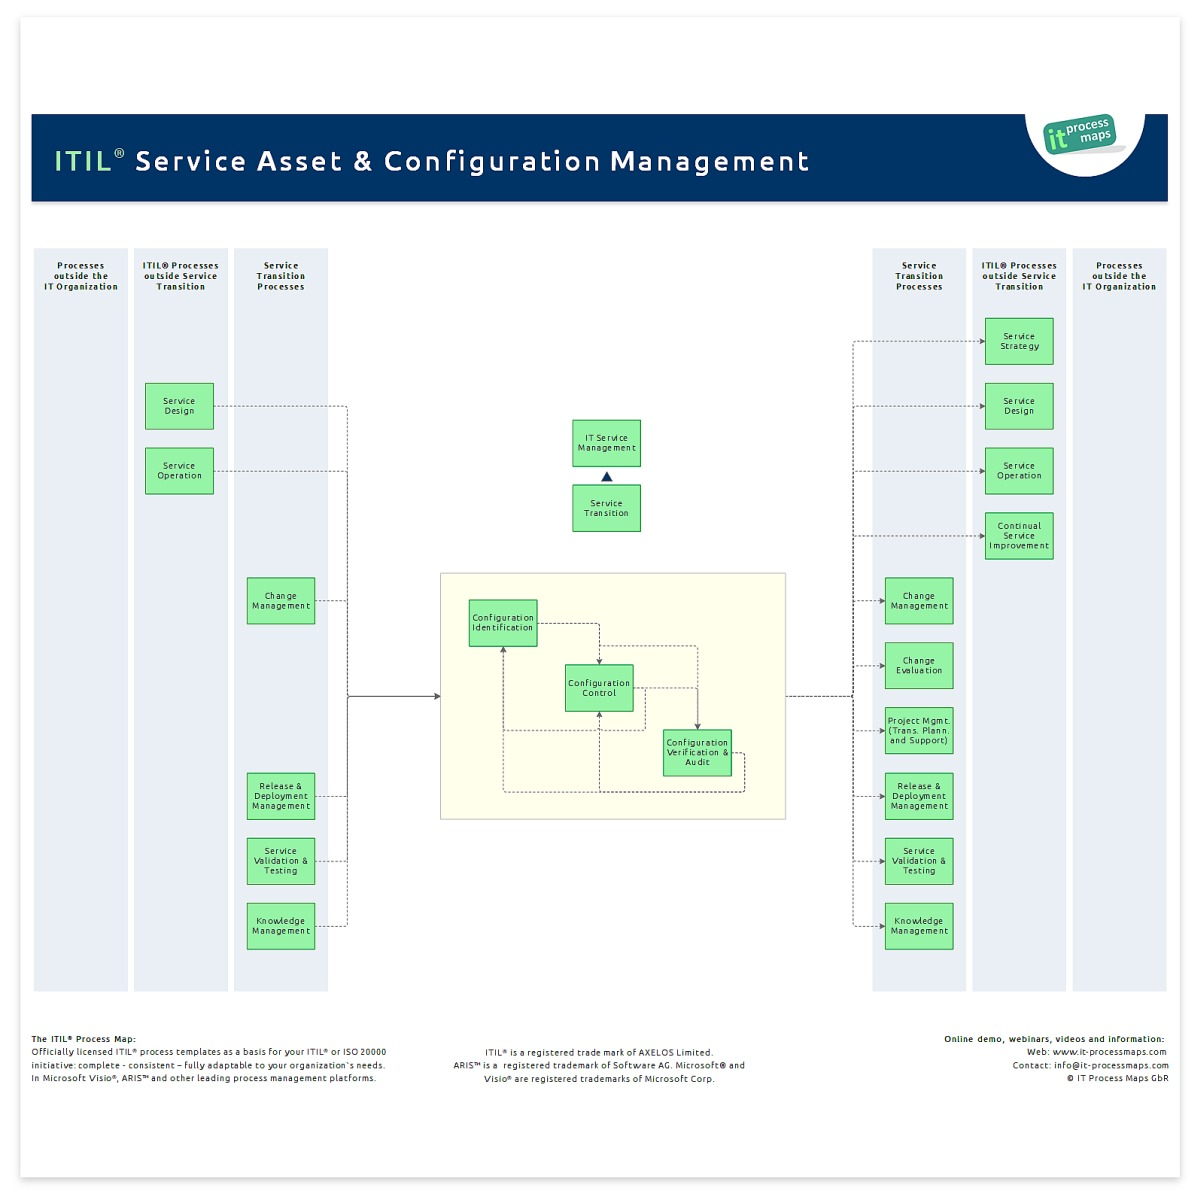 Service Asset And Configuration Management | It Process Wiki